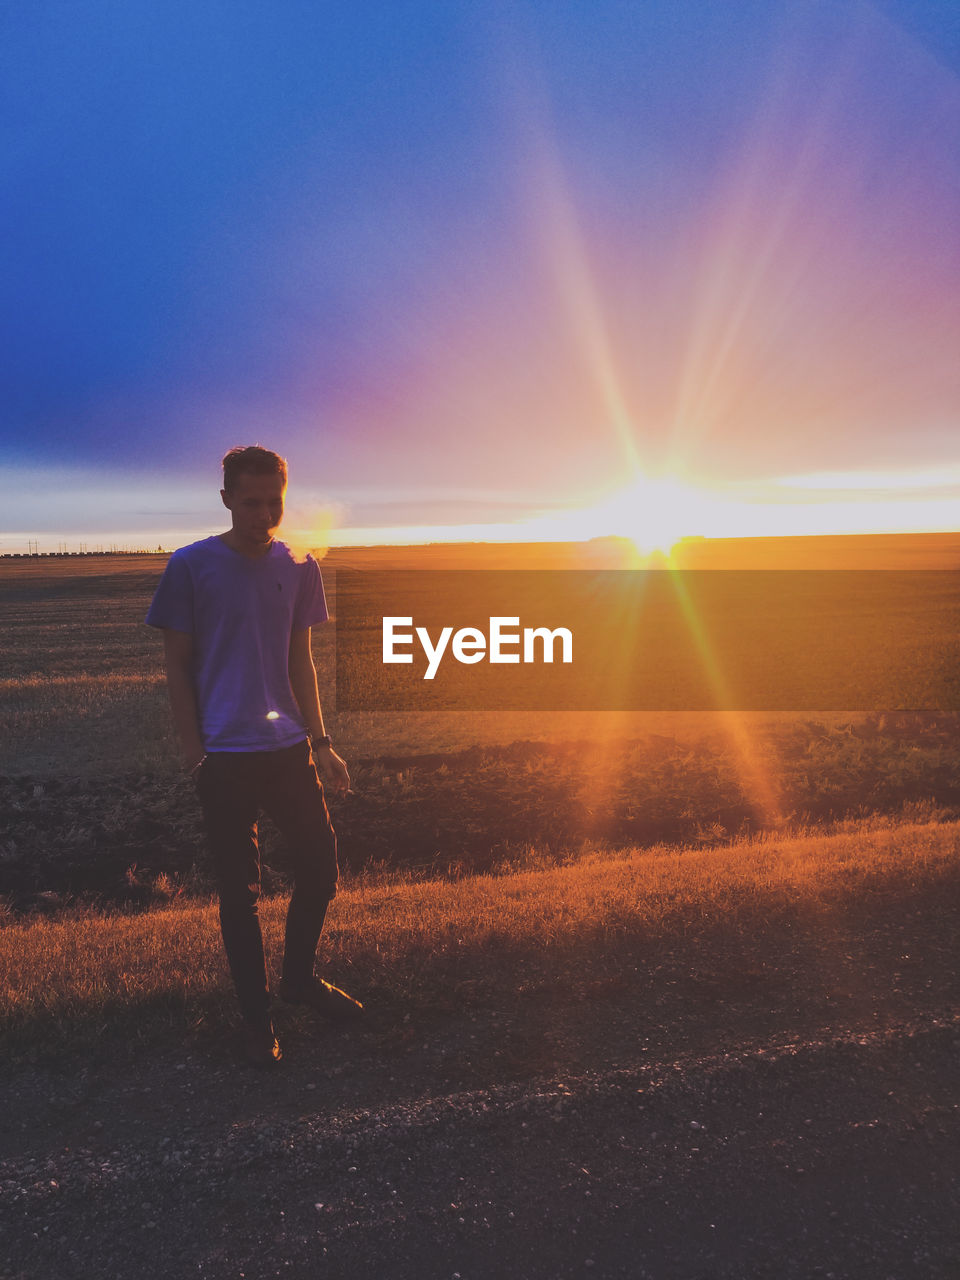 Man walking on road against cloudy sky during sunset